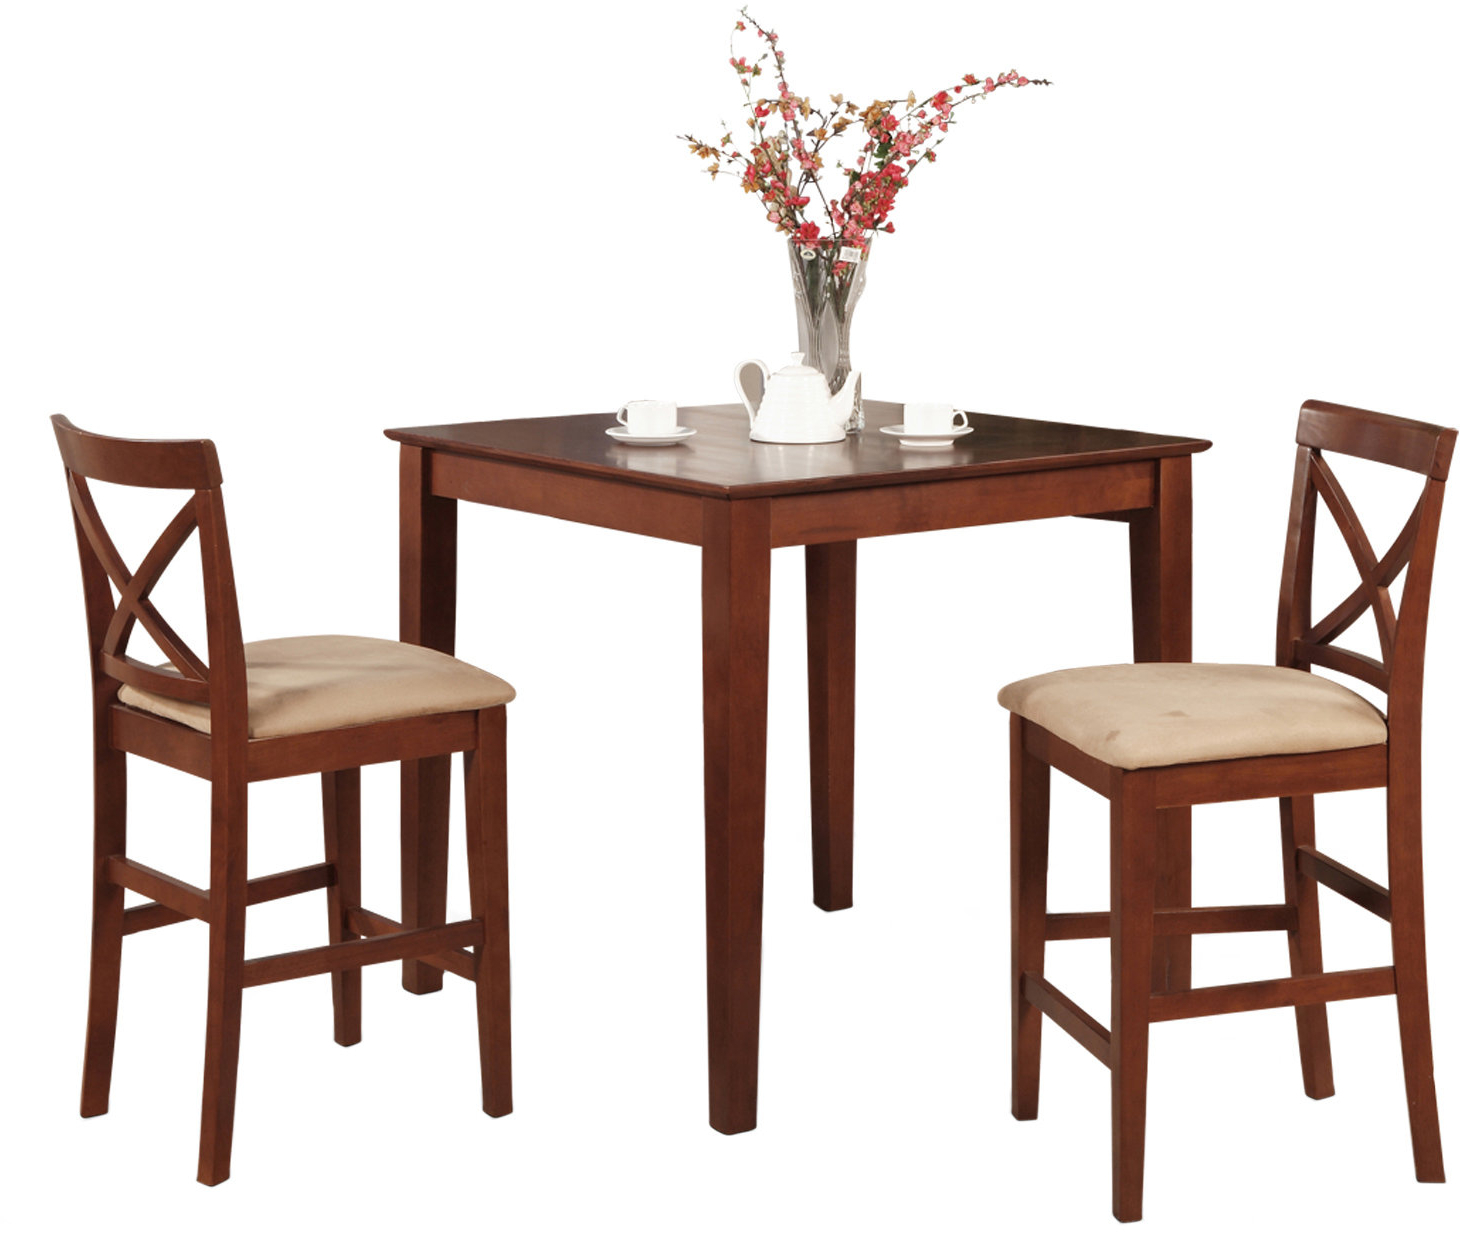 Bettencourt 3 Piece Counter Height Solid Wood Dining Sets Throughout 2018 Pleasant View 3 Piece Counter Height Bistro Set (View 8 of 20)